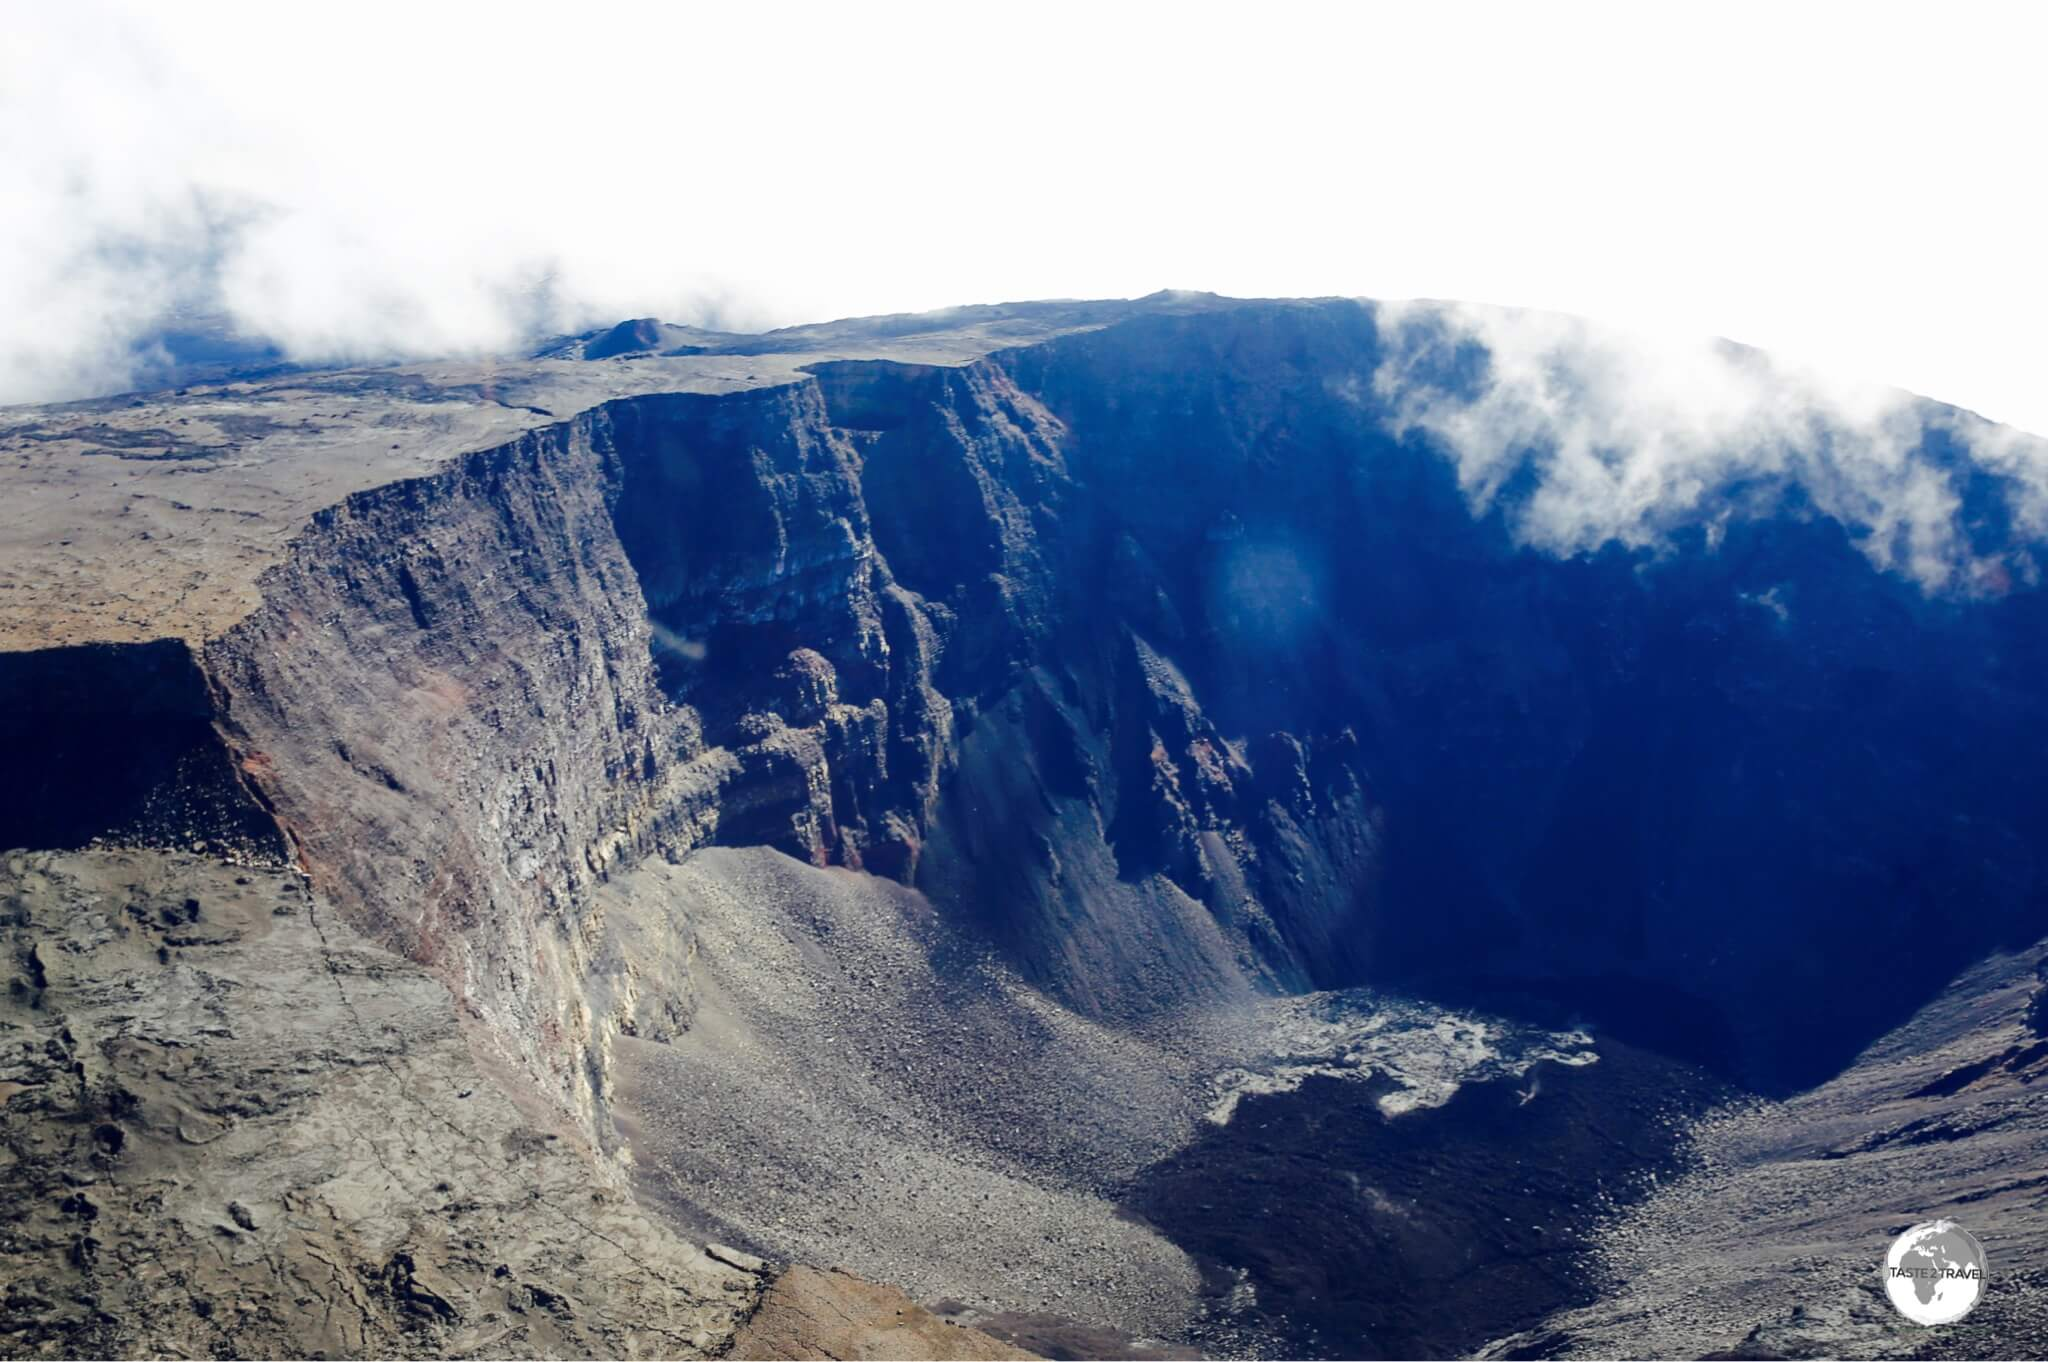 A panoramic view of the crater of the very active Piton de la Fournaise volcano, as seen from my Corail helicopter flight.